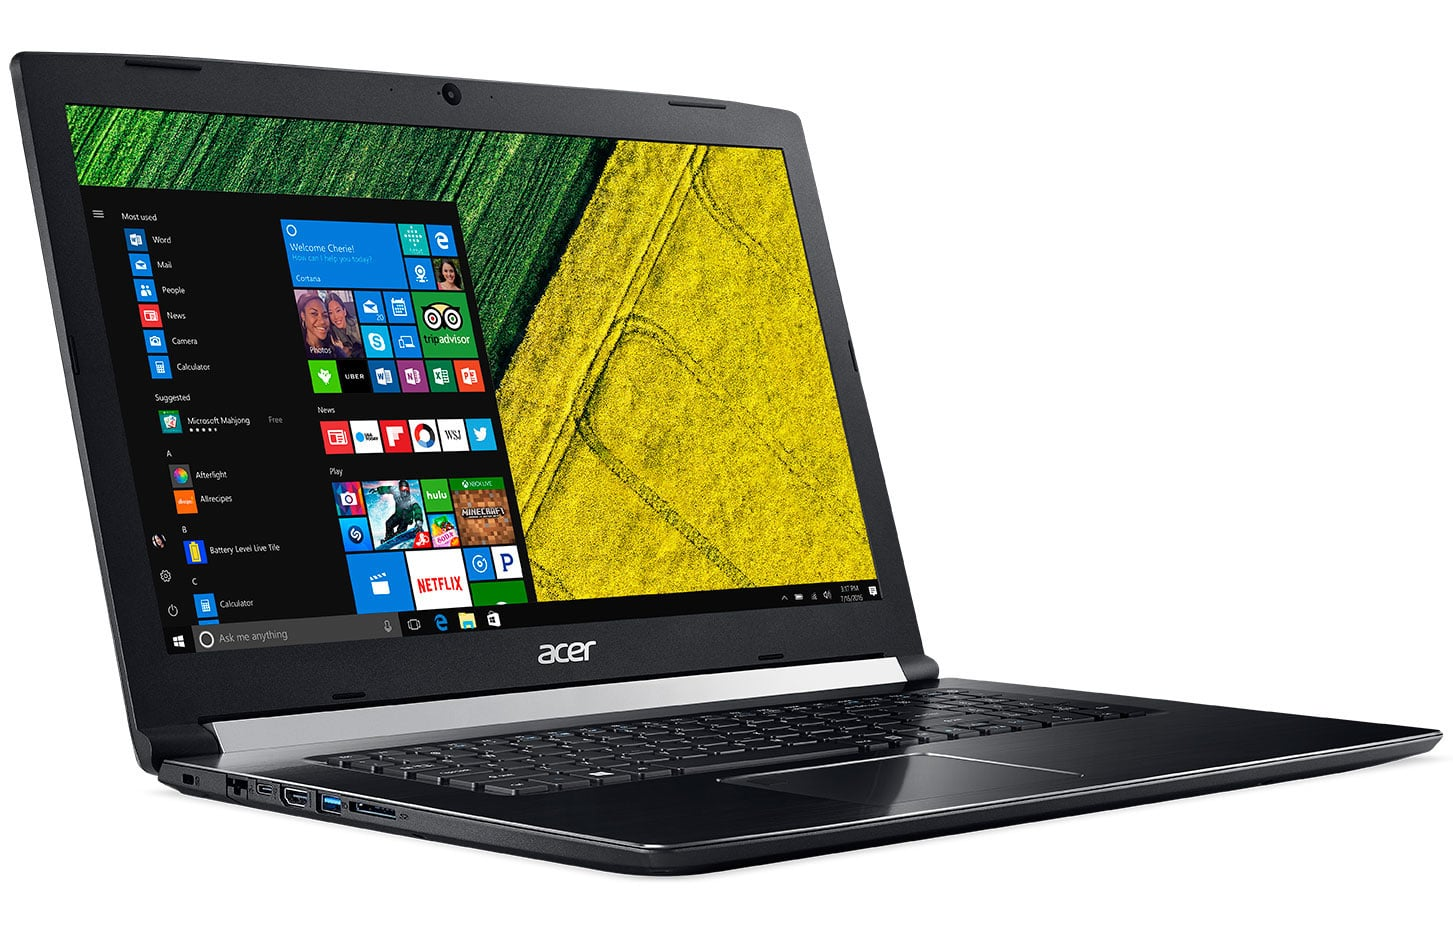 "Acer Aspire A717-72G-579U, PC portable 17"" GTX i5 Coffee Full IPS SSD à 899€"